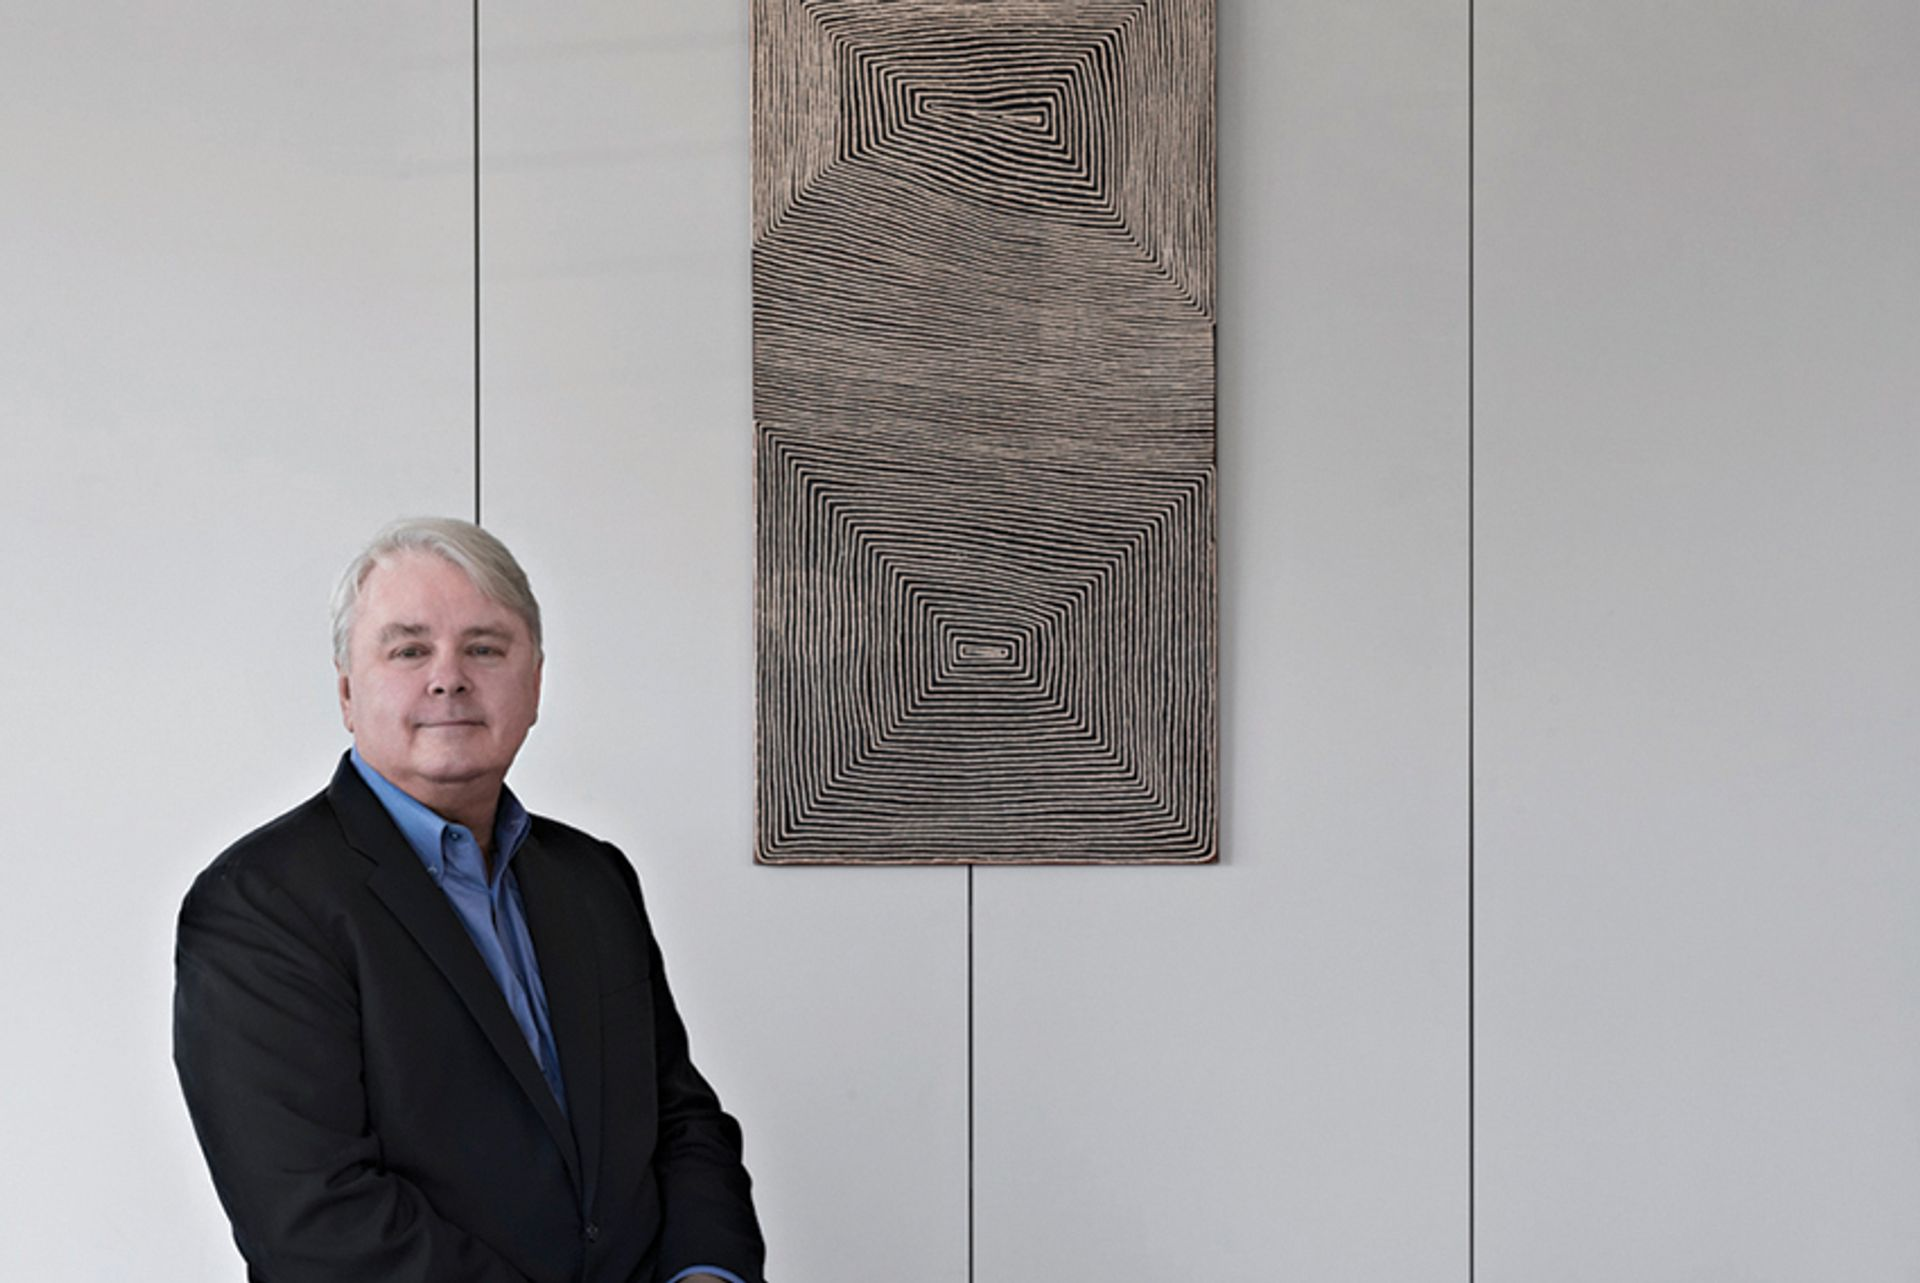 Dennis Scholl, of Art Center/South Florida, which is working with Art Basel Matthu Placek 2012